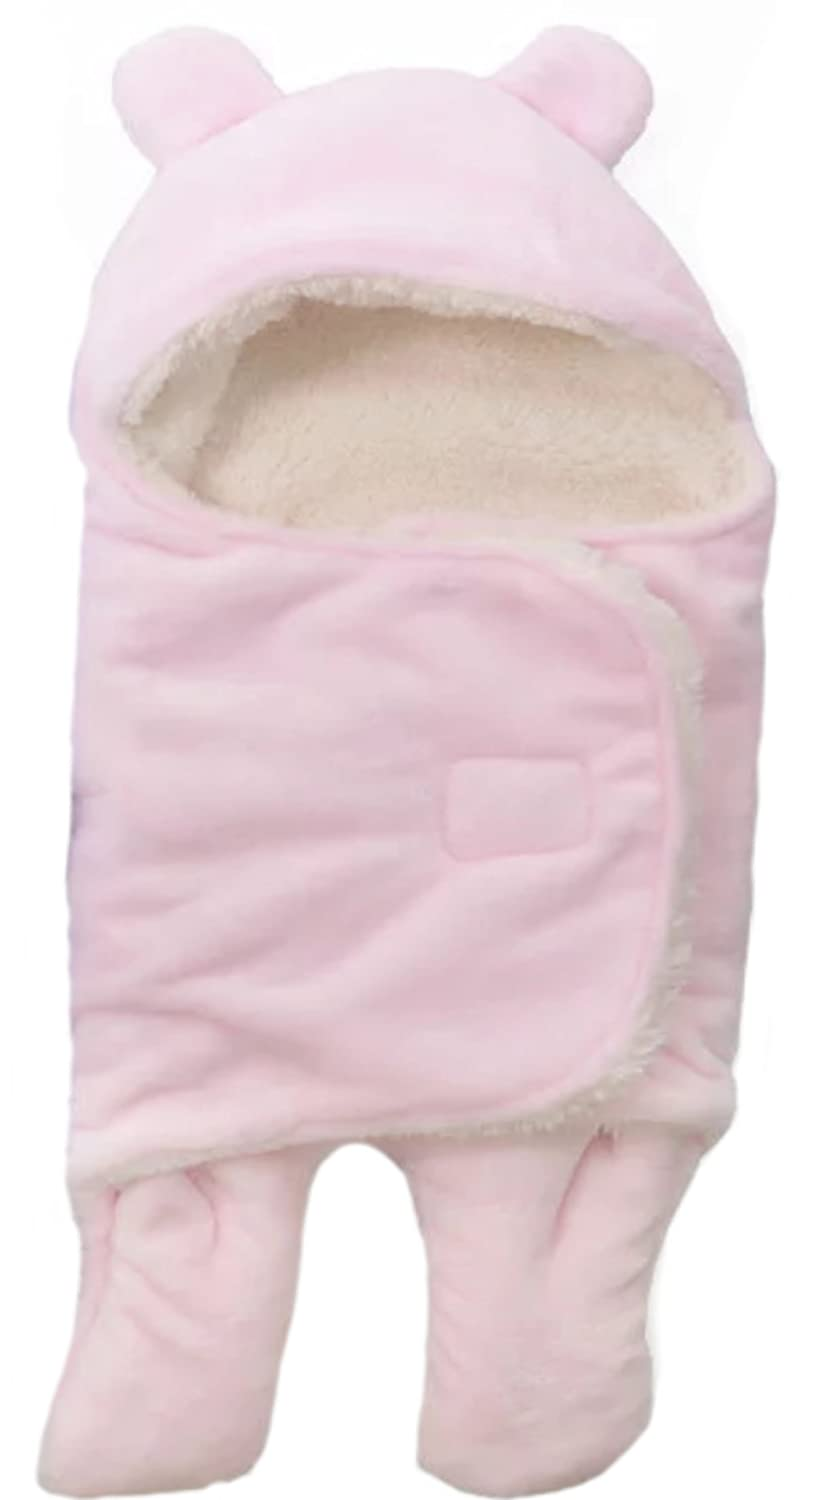 BRANDONN 3 in 1 Baby Boy's and Baby Girl's Baby Blanket, Pink